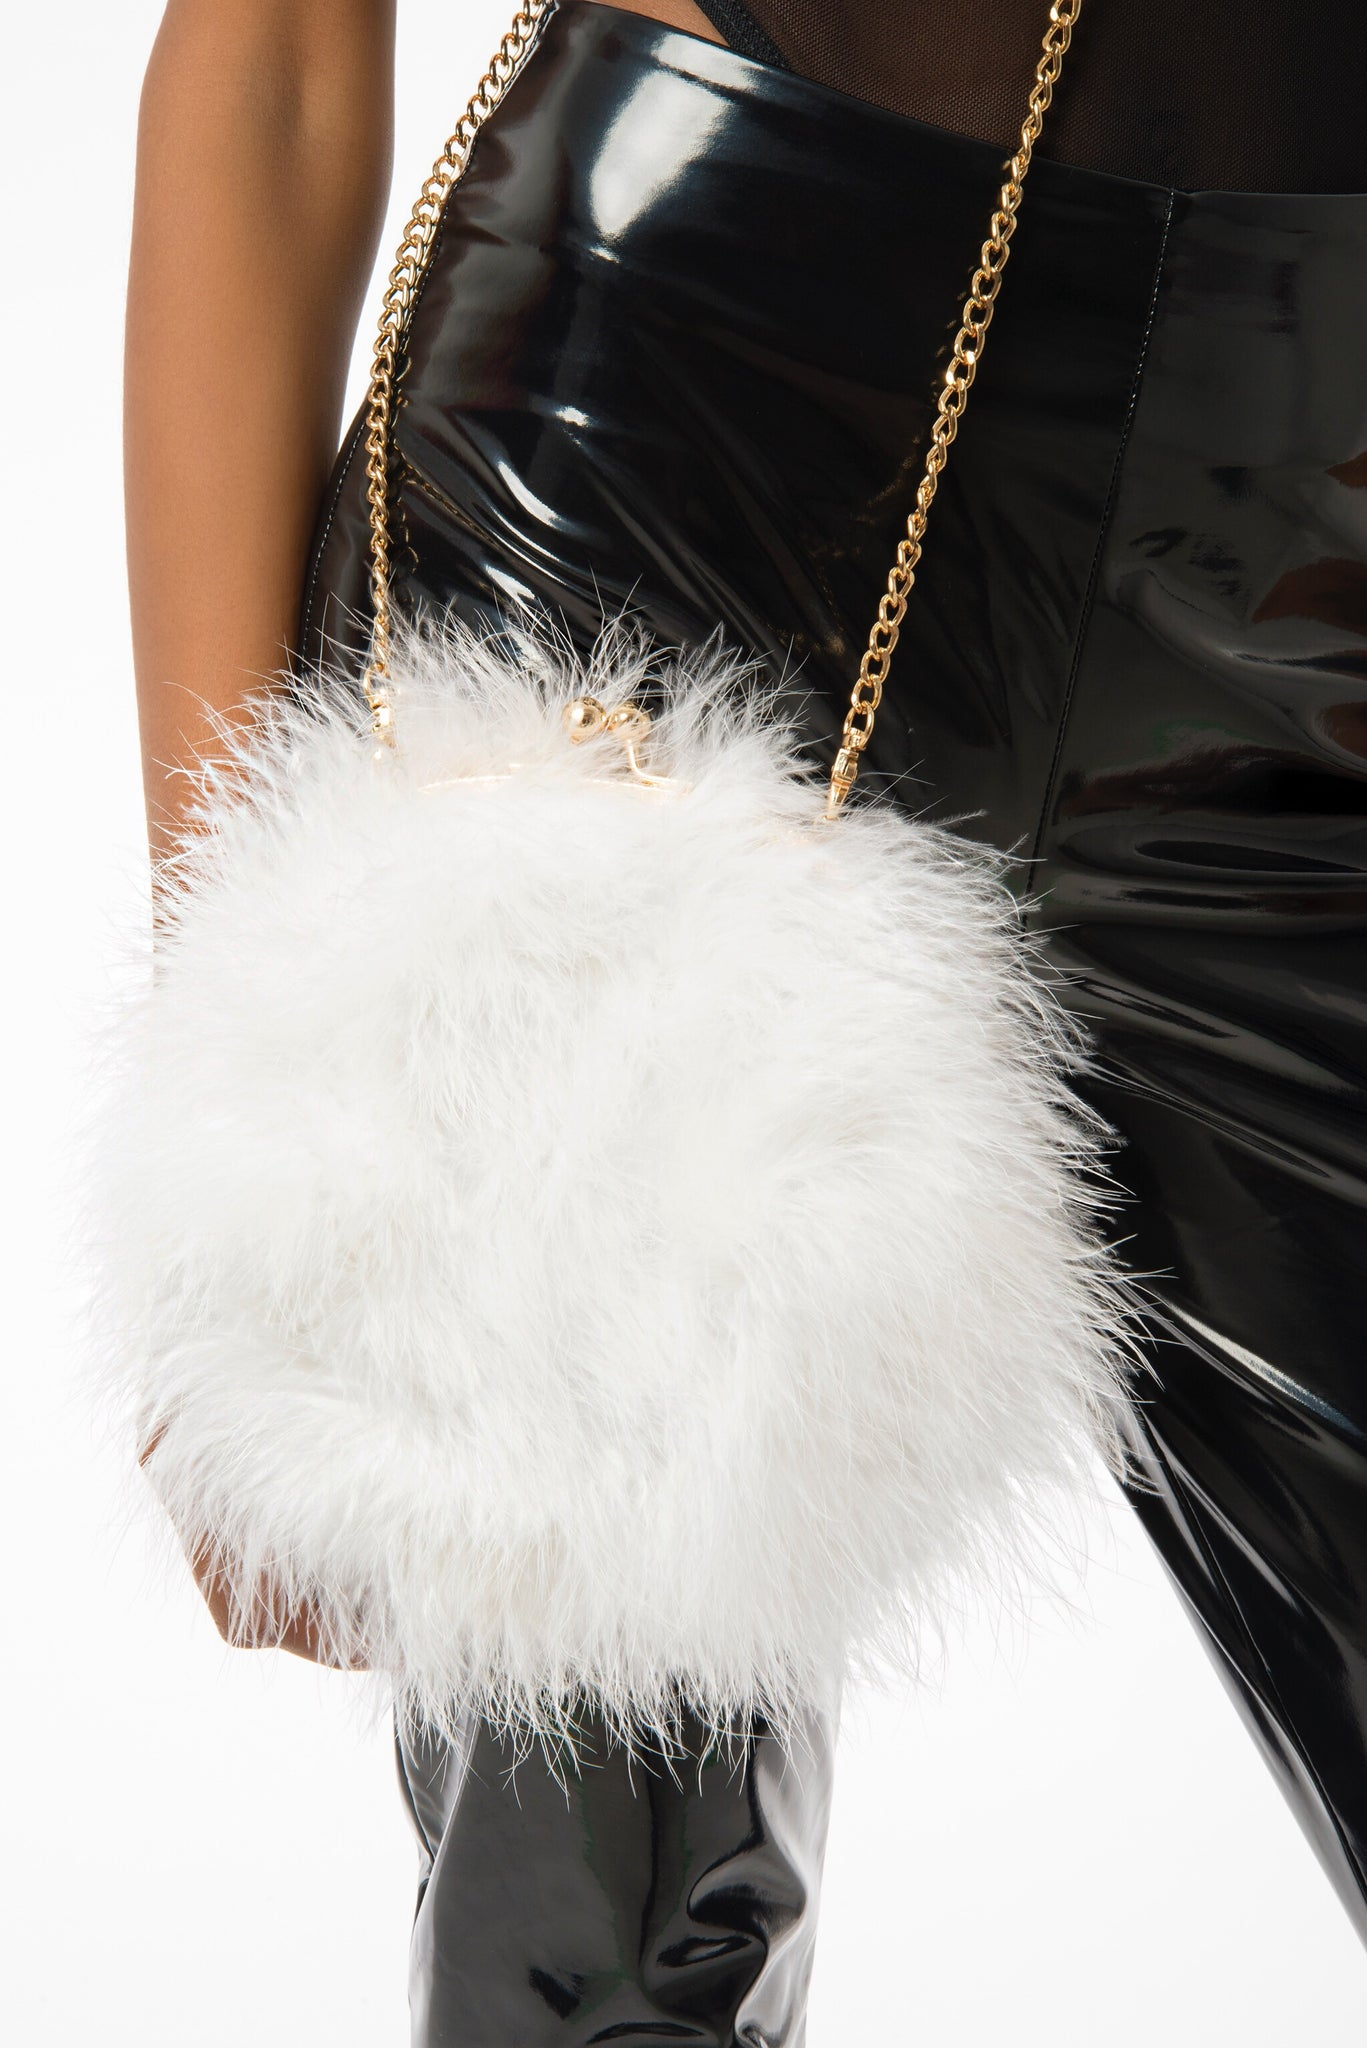 d0228993f9a Snow White Fur Clutch, Fluffy Purse with Gold Chain Cross-body ...